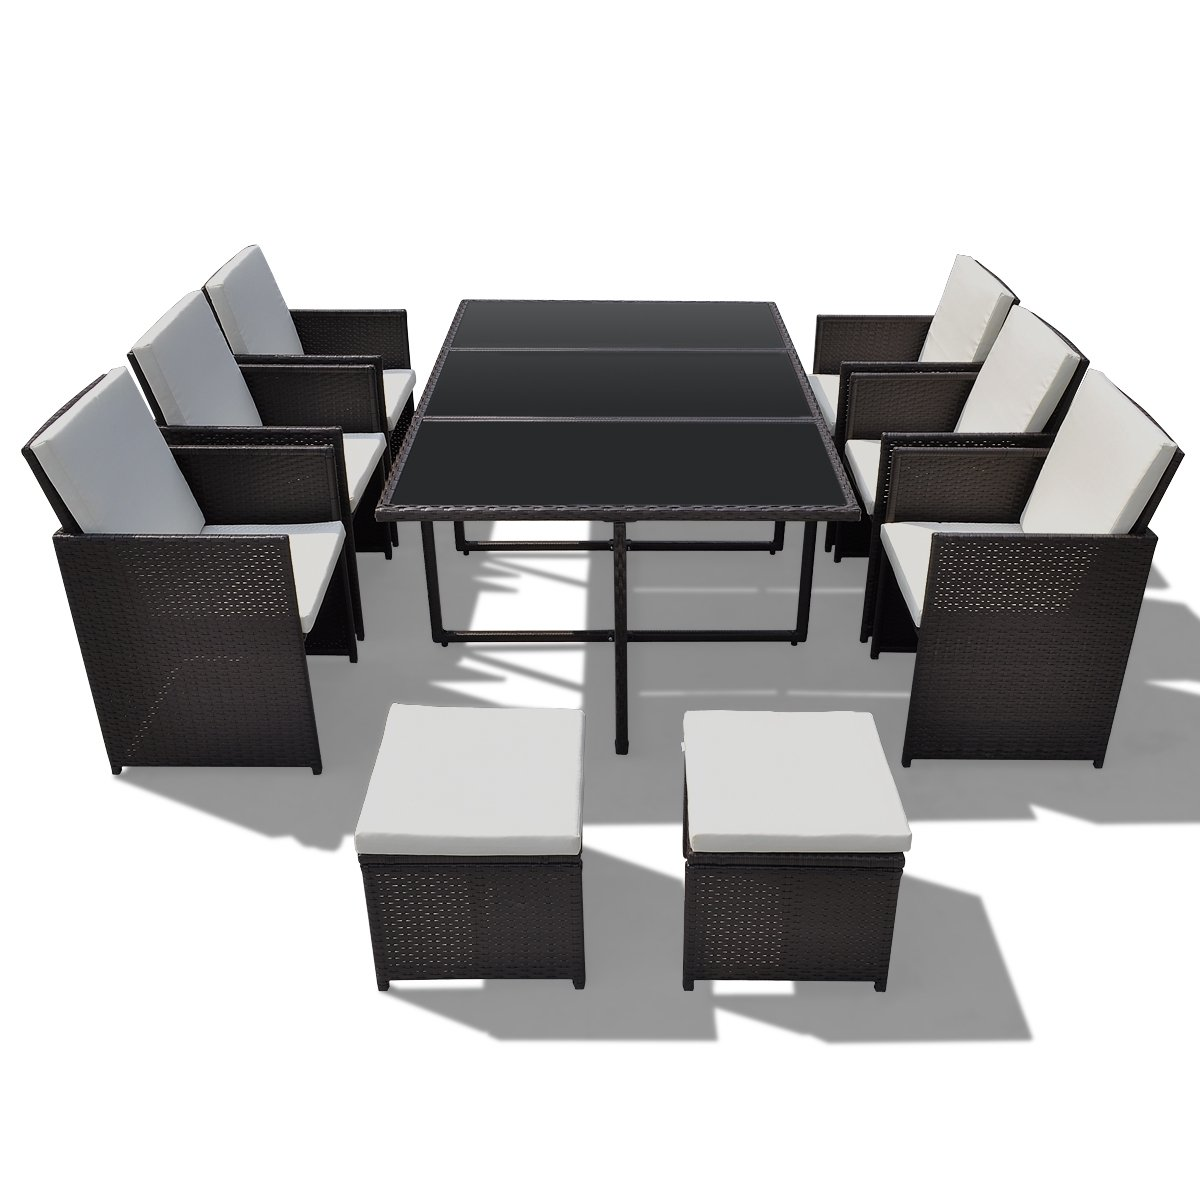 ssitg poly rattan gartenm bel essgruppe gartengarnitur set. Black Bedroom Furniture Sets. Home Design Ideas